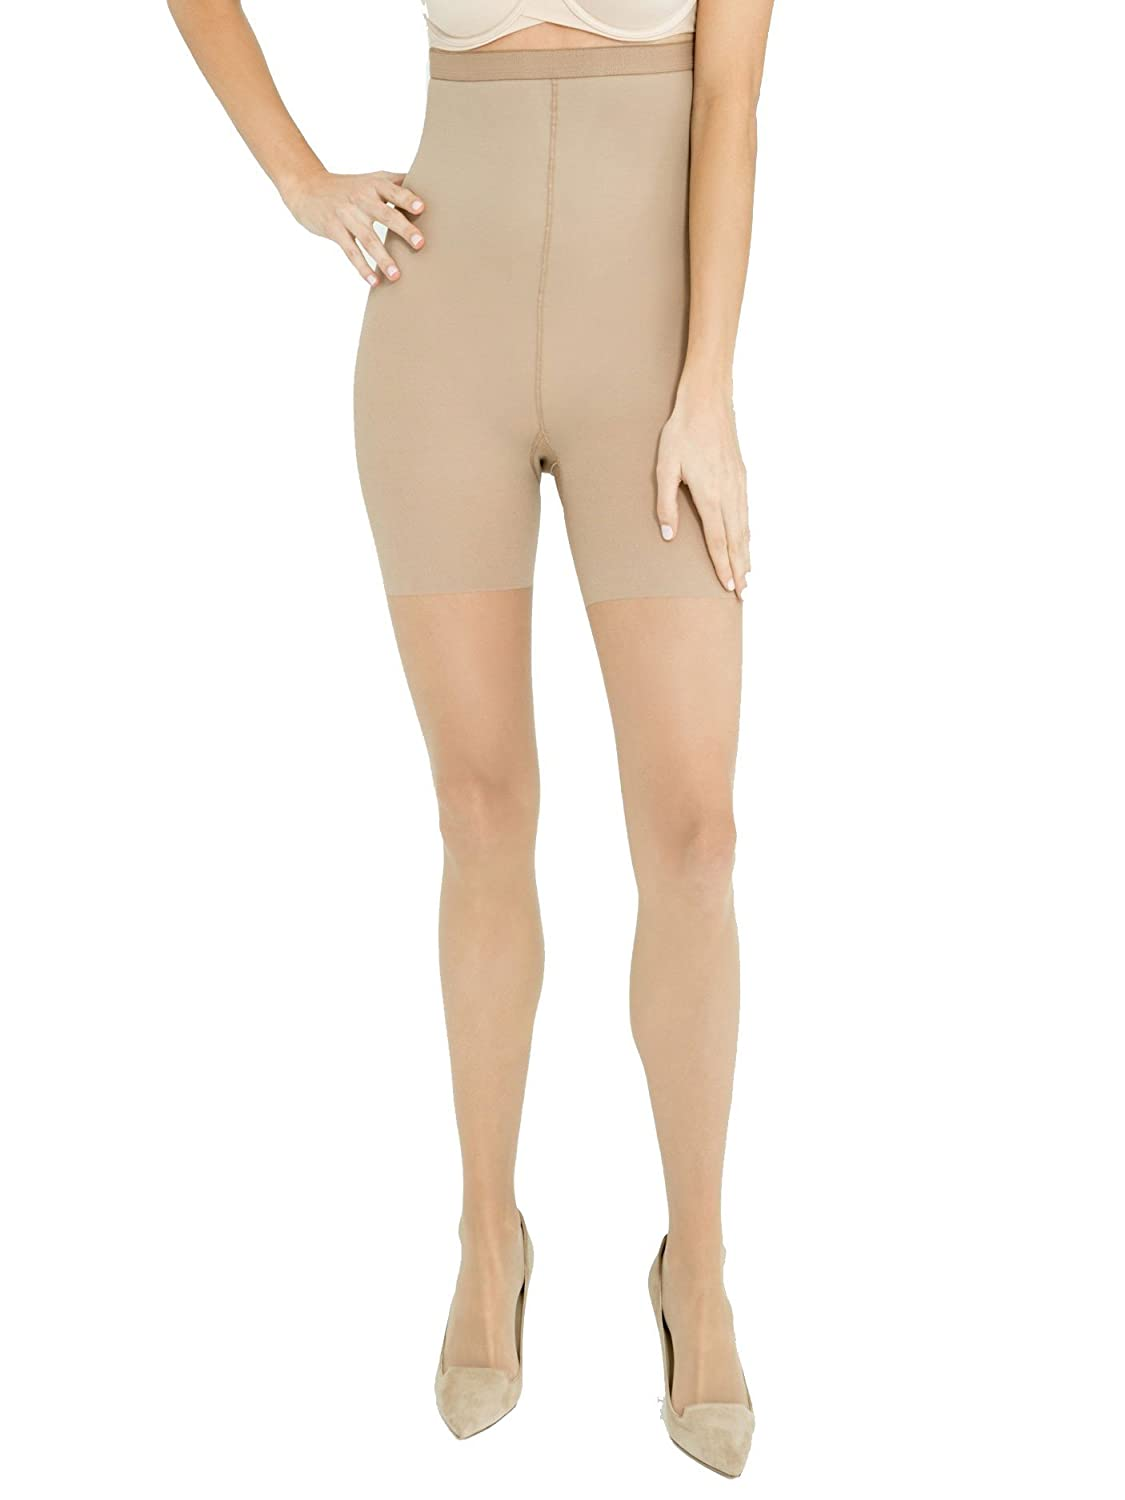 c037c238e4134 SPANX Womens Luxe Leg 15 Denier High-Waisted Sheers - Nude: Amazon.ca:  Clothing & Accessories